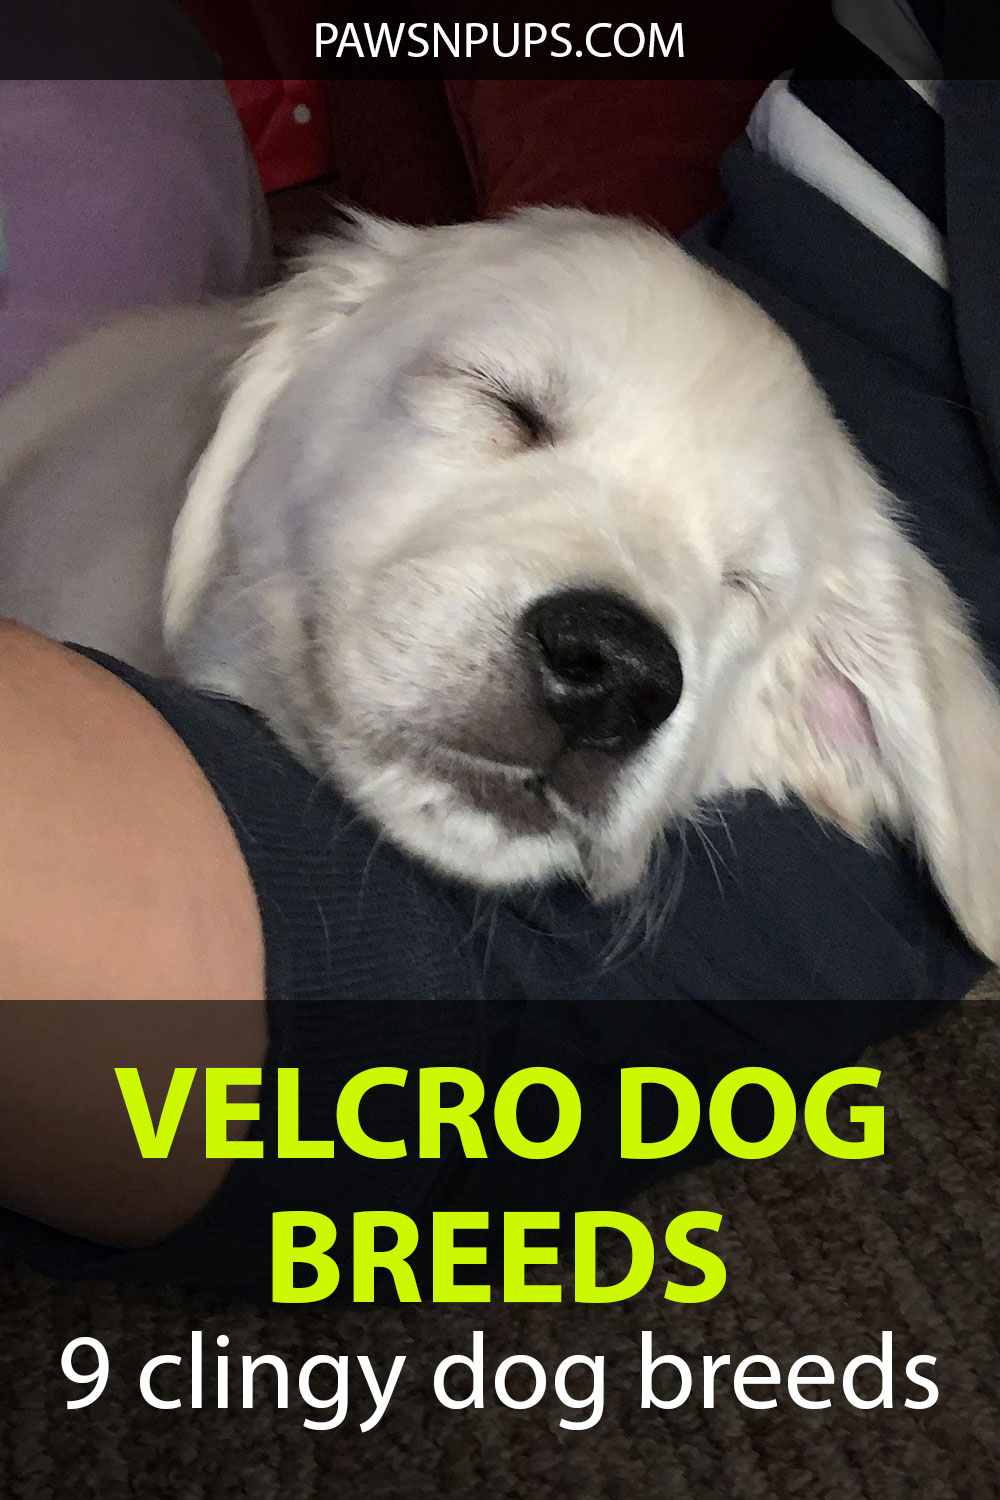 Velcro Dog Breeds - 9 Clingy Dog Breeds - white golden retriever puppy lying on my arm. Definitely a clingy breed.